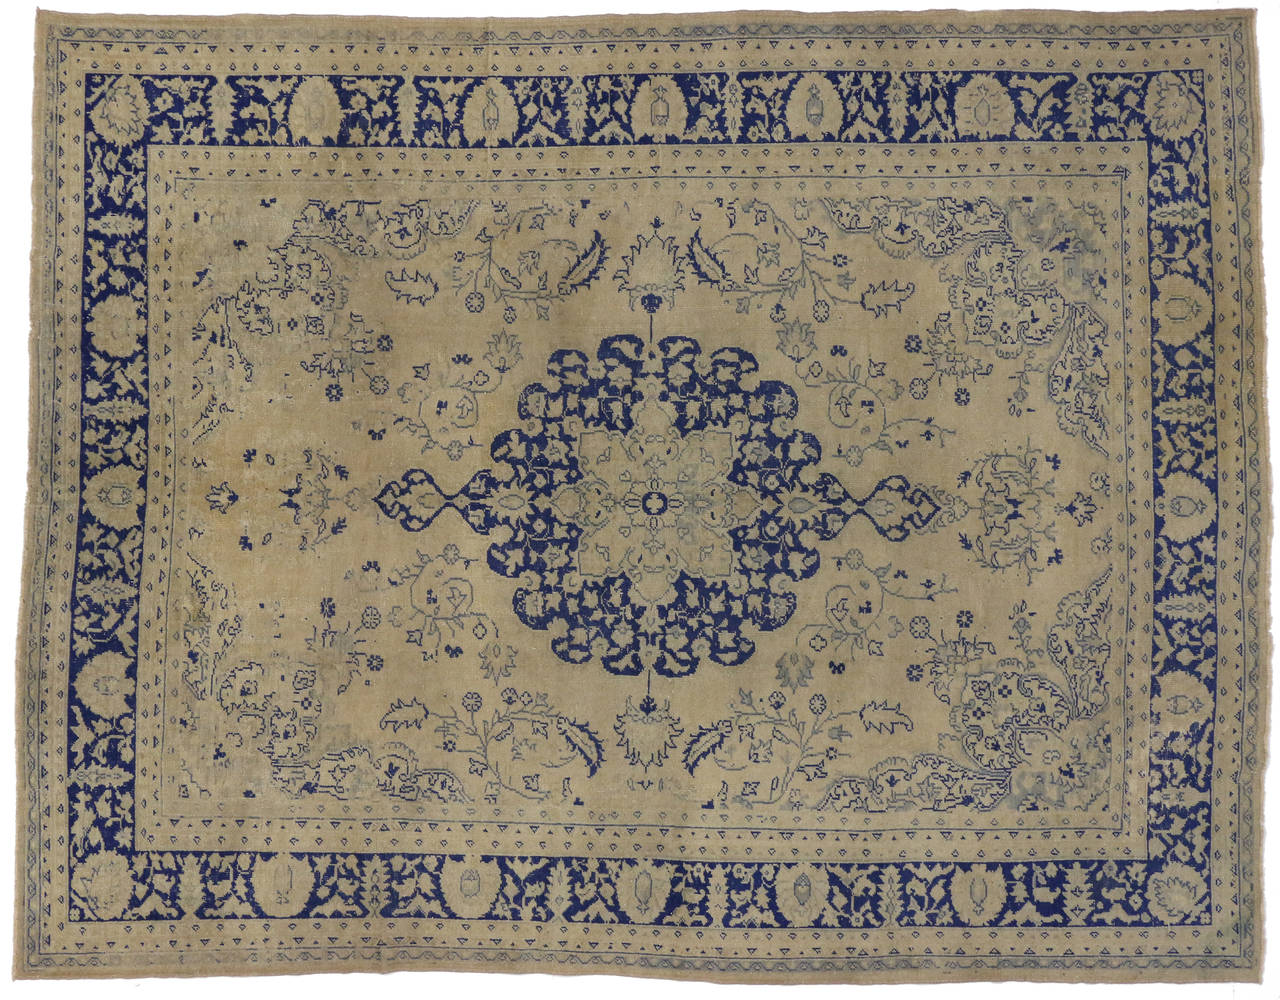 SemiAntique Turkish Oushak Rug with Chinoiserie Chic Style For